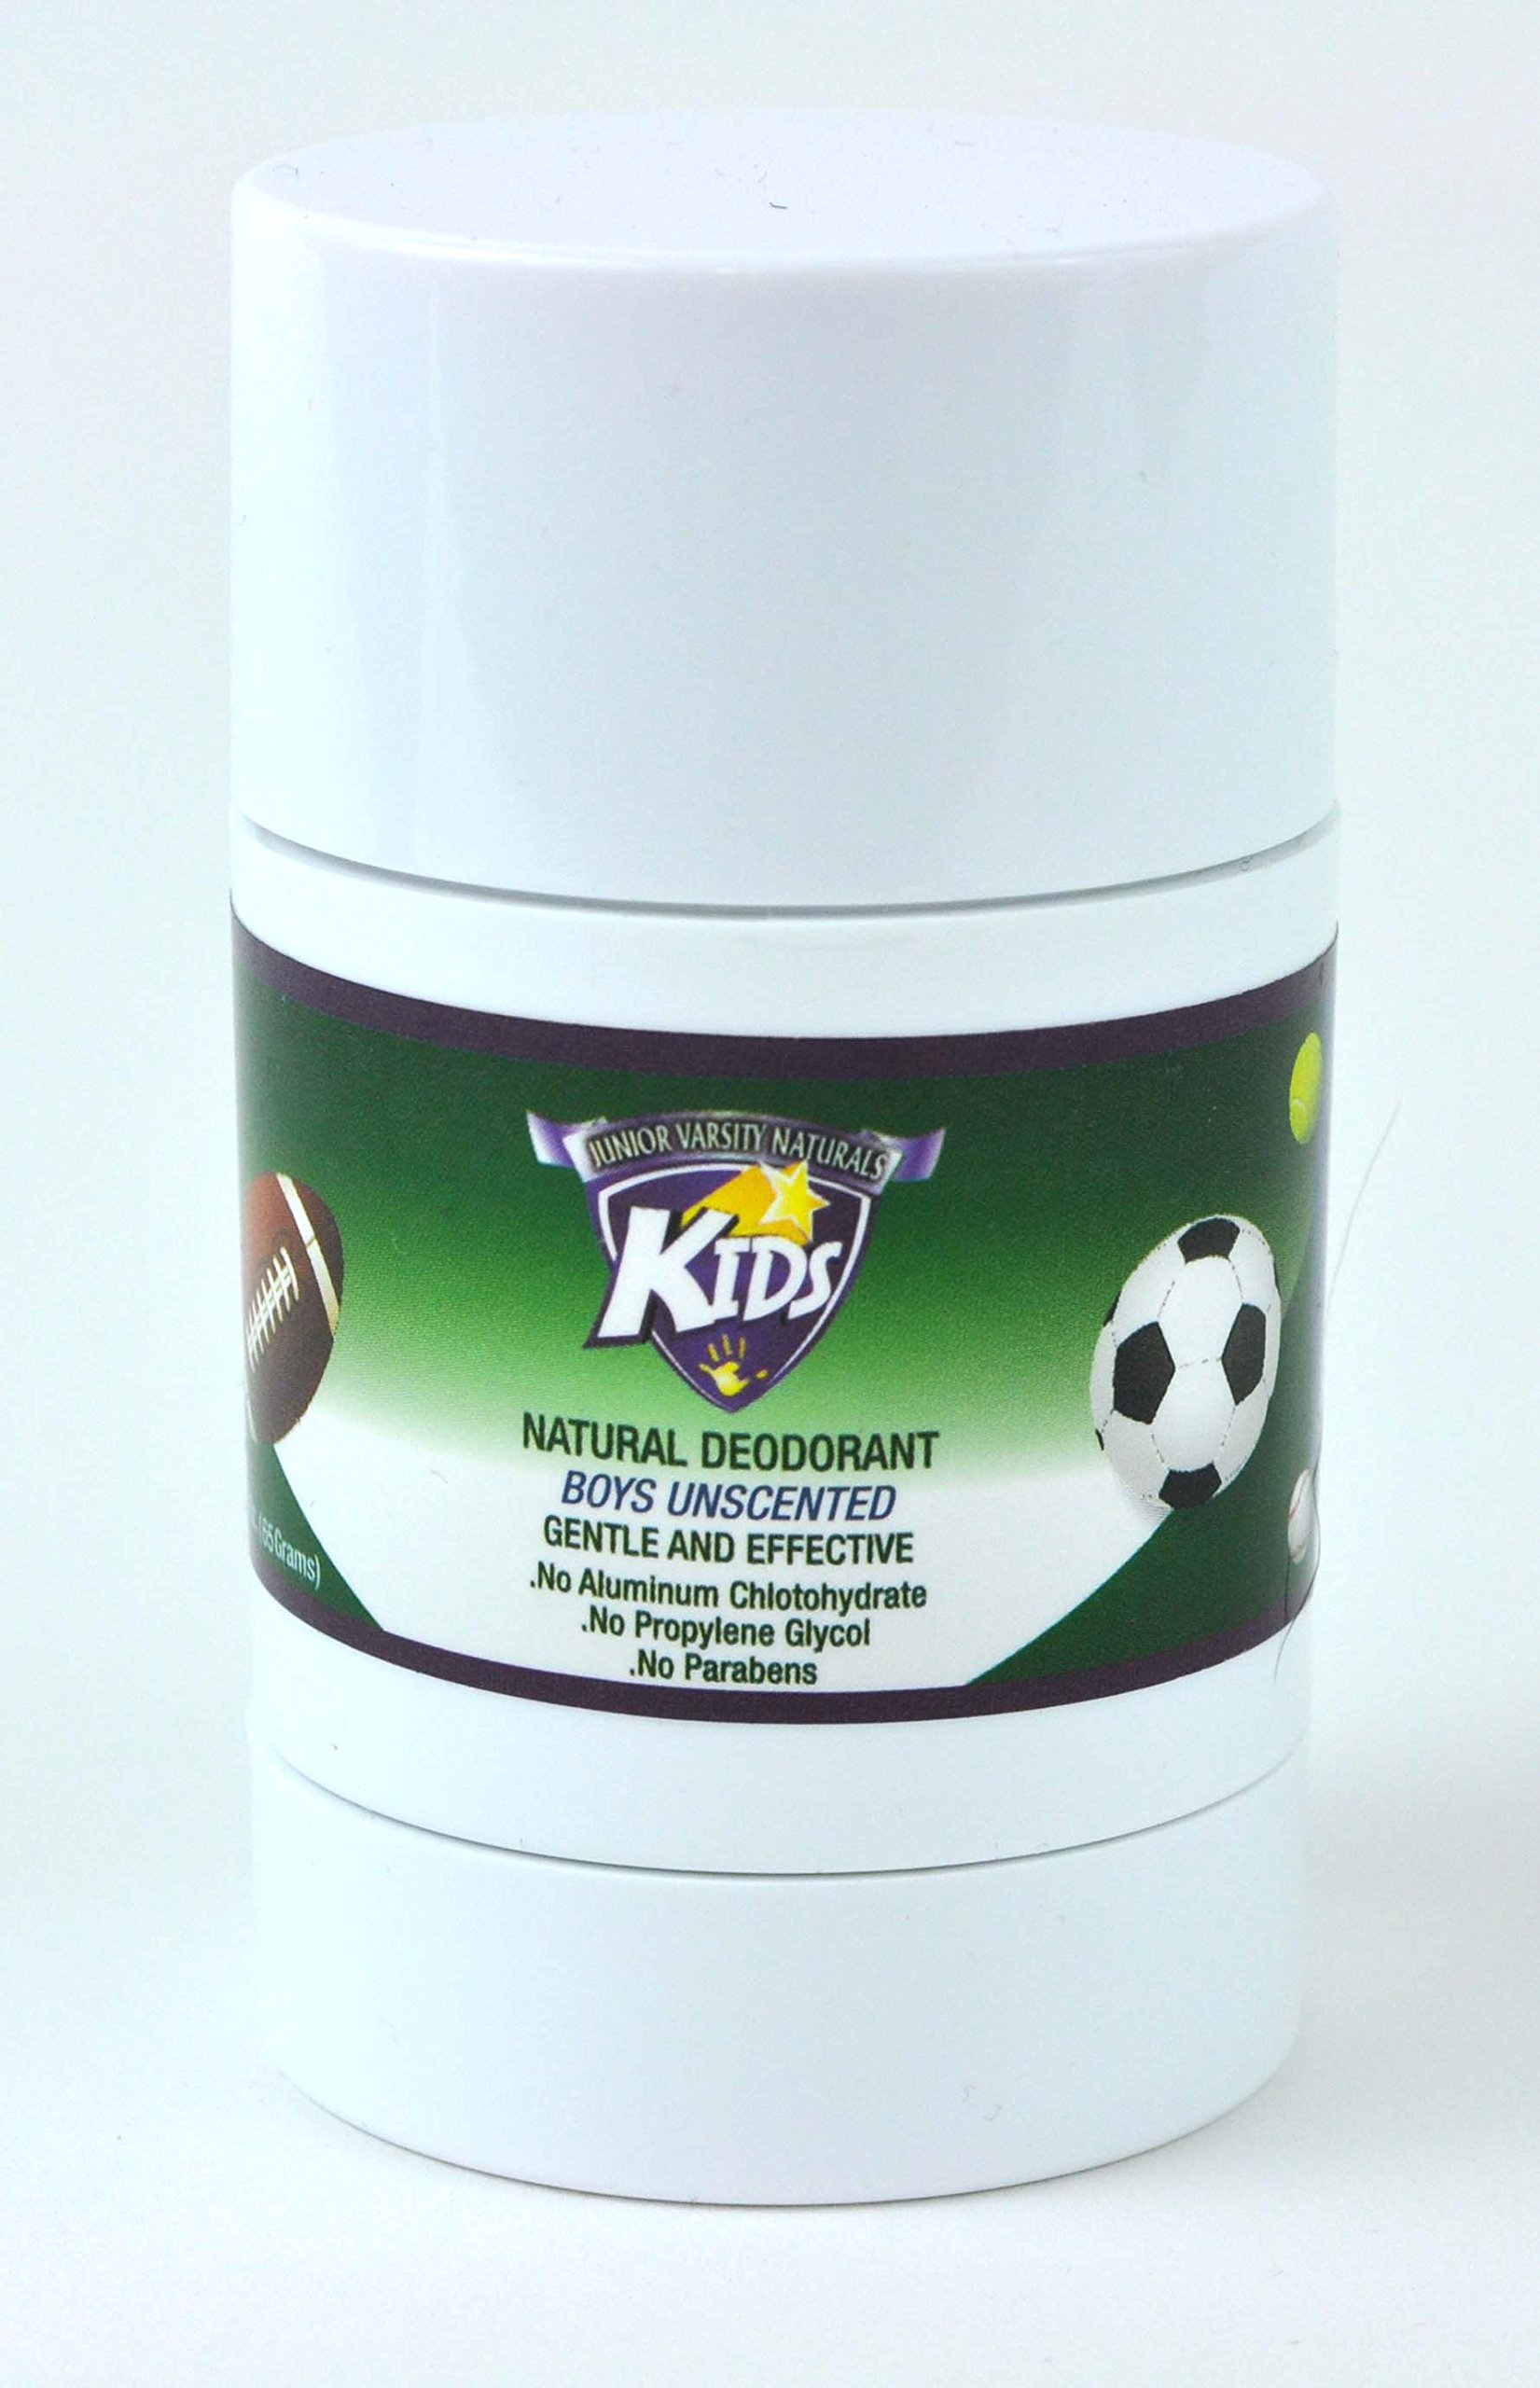 amazoncom kids natural deodorant for girls unscented